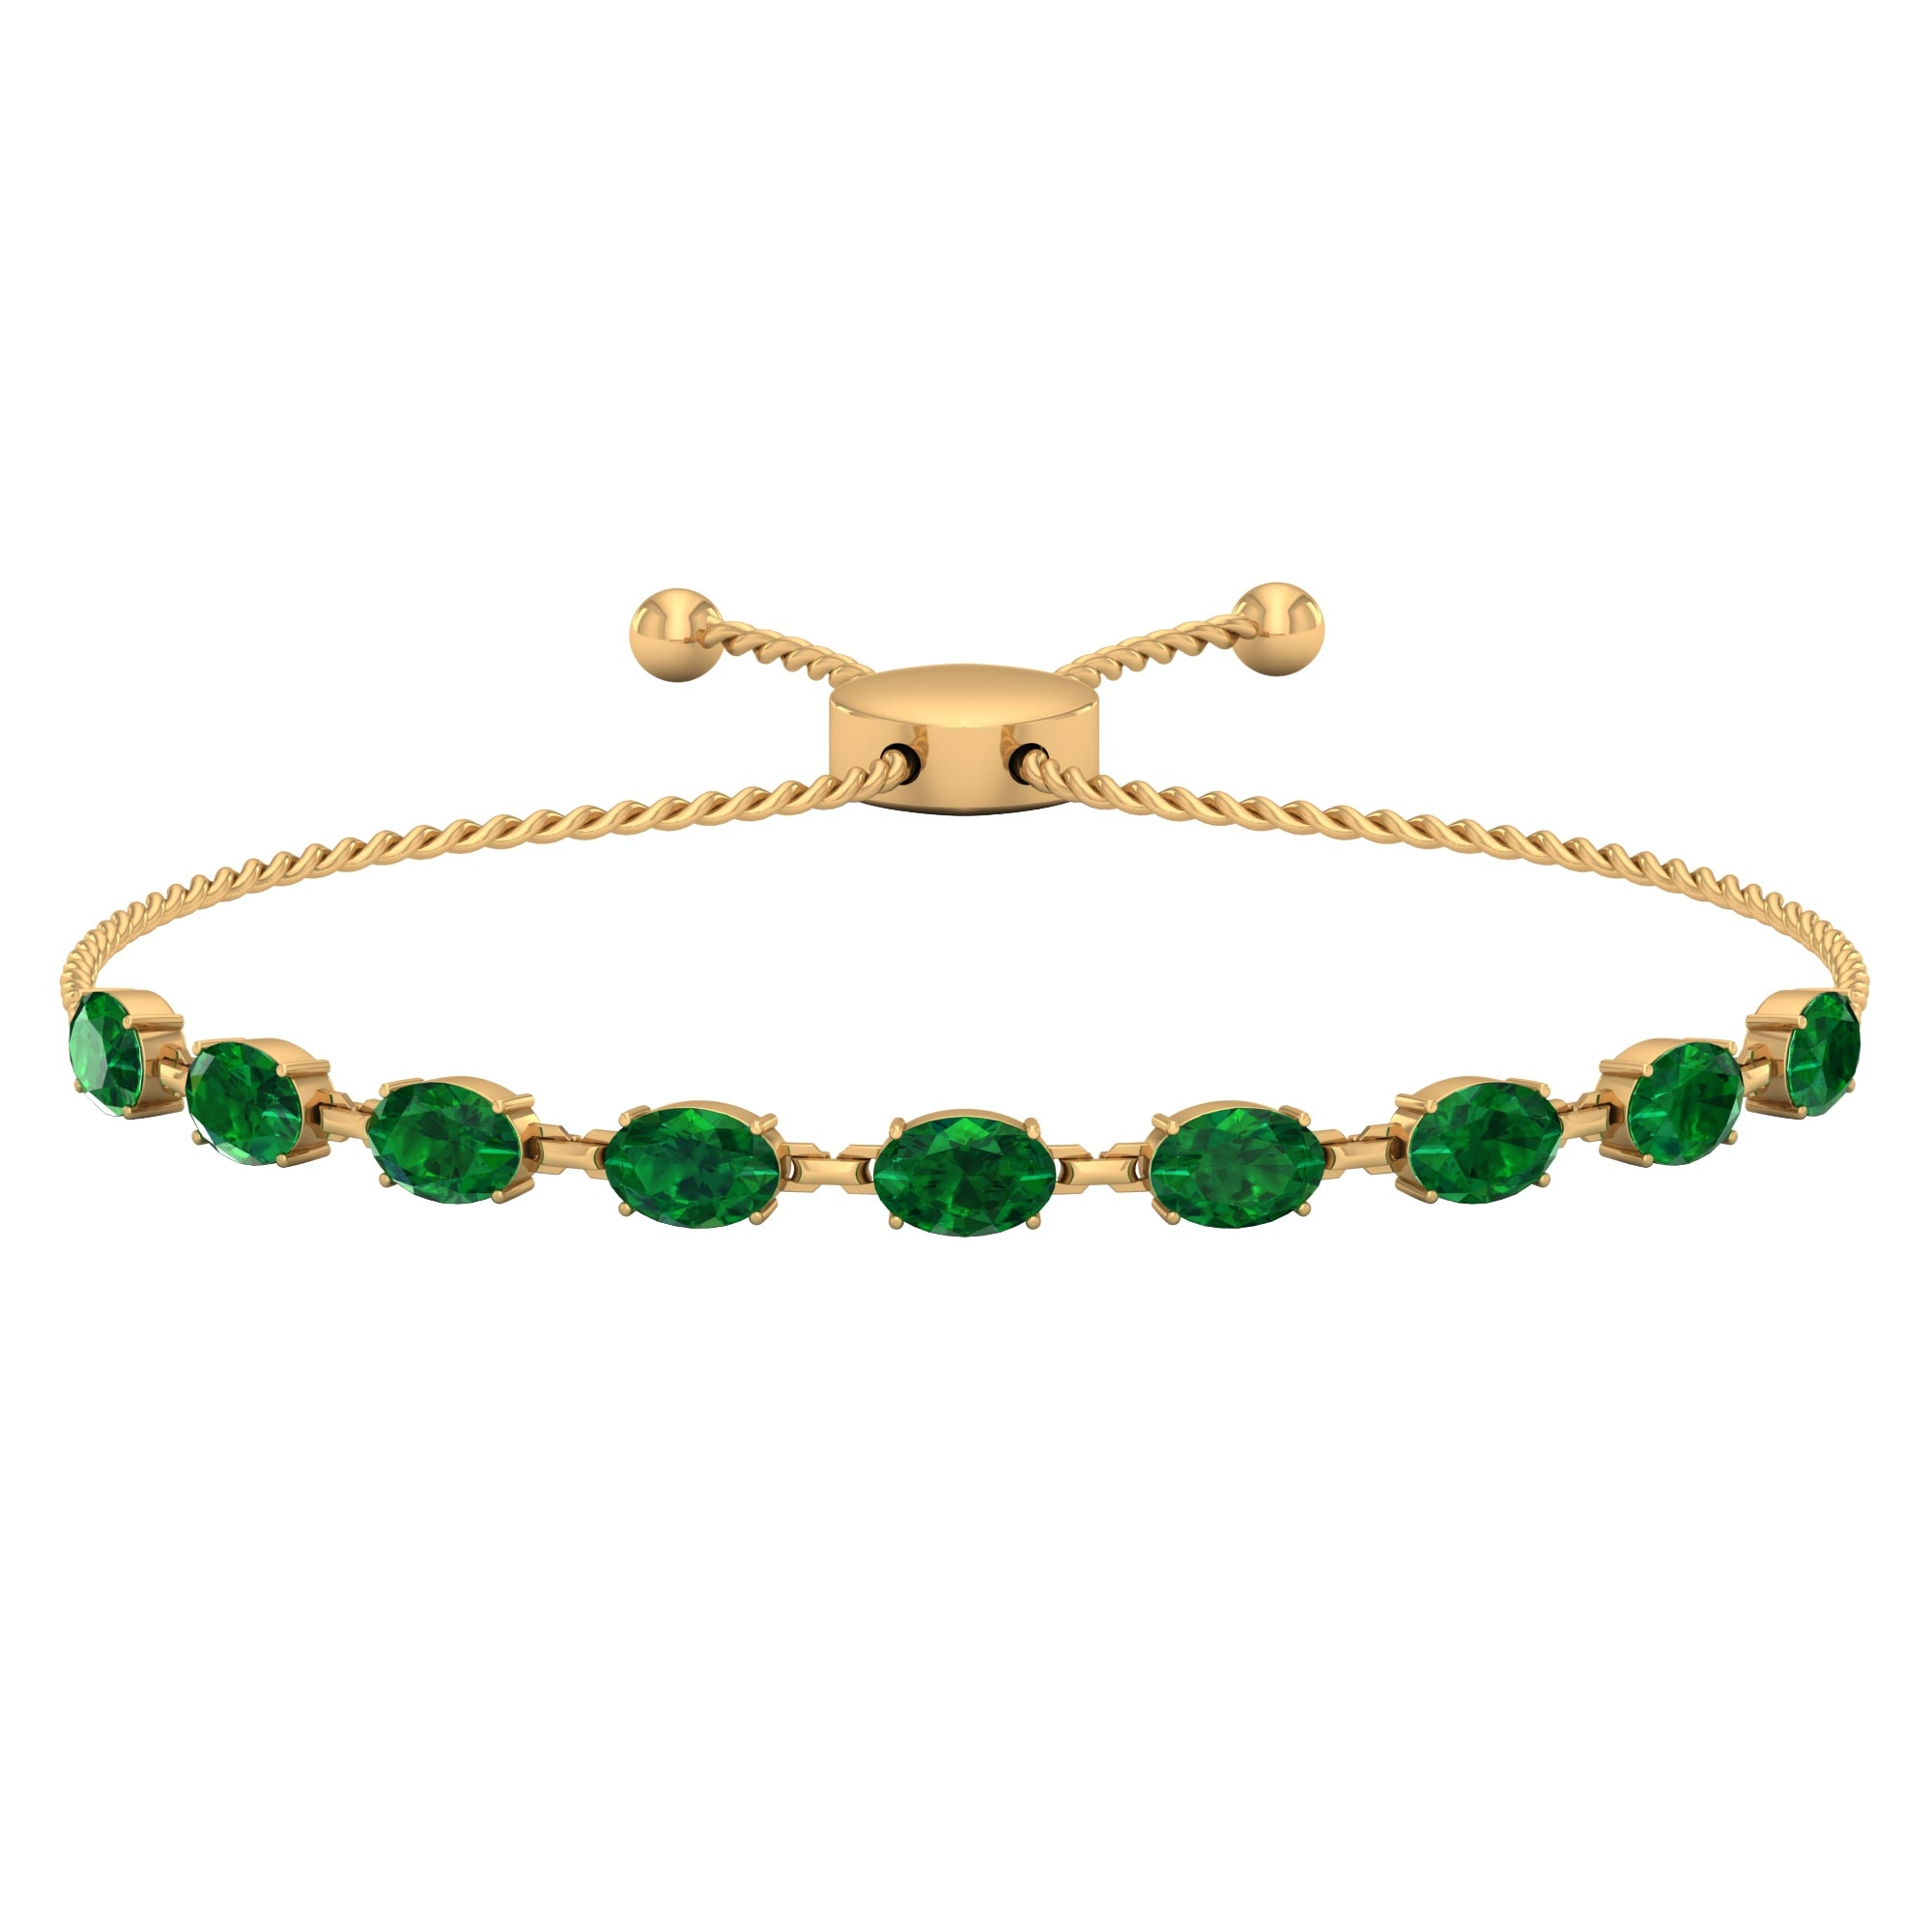 4.75 CT Oval Cut Emerald East West Bolo Bracelet in Prong Setting